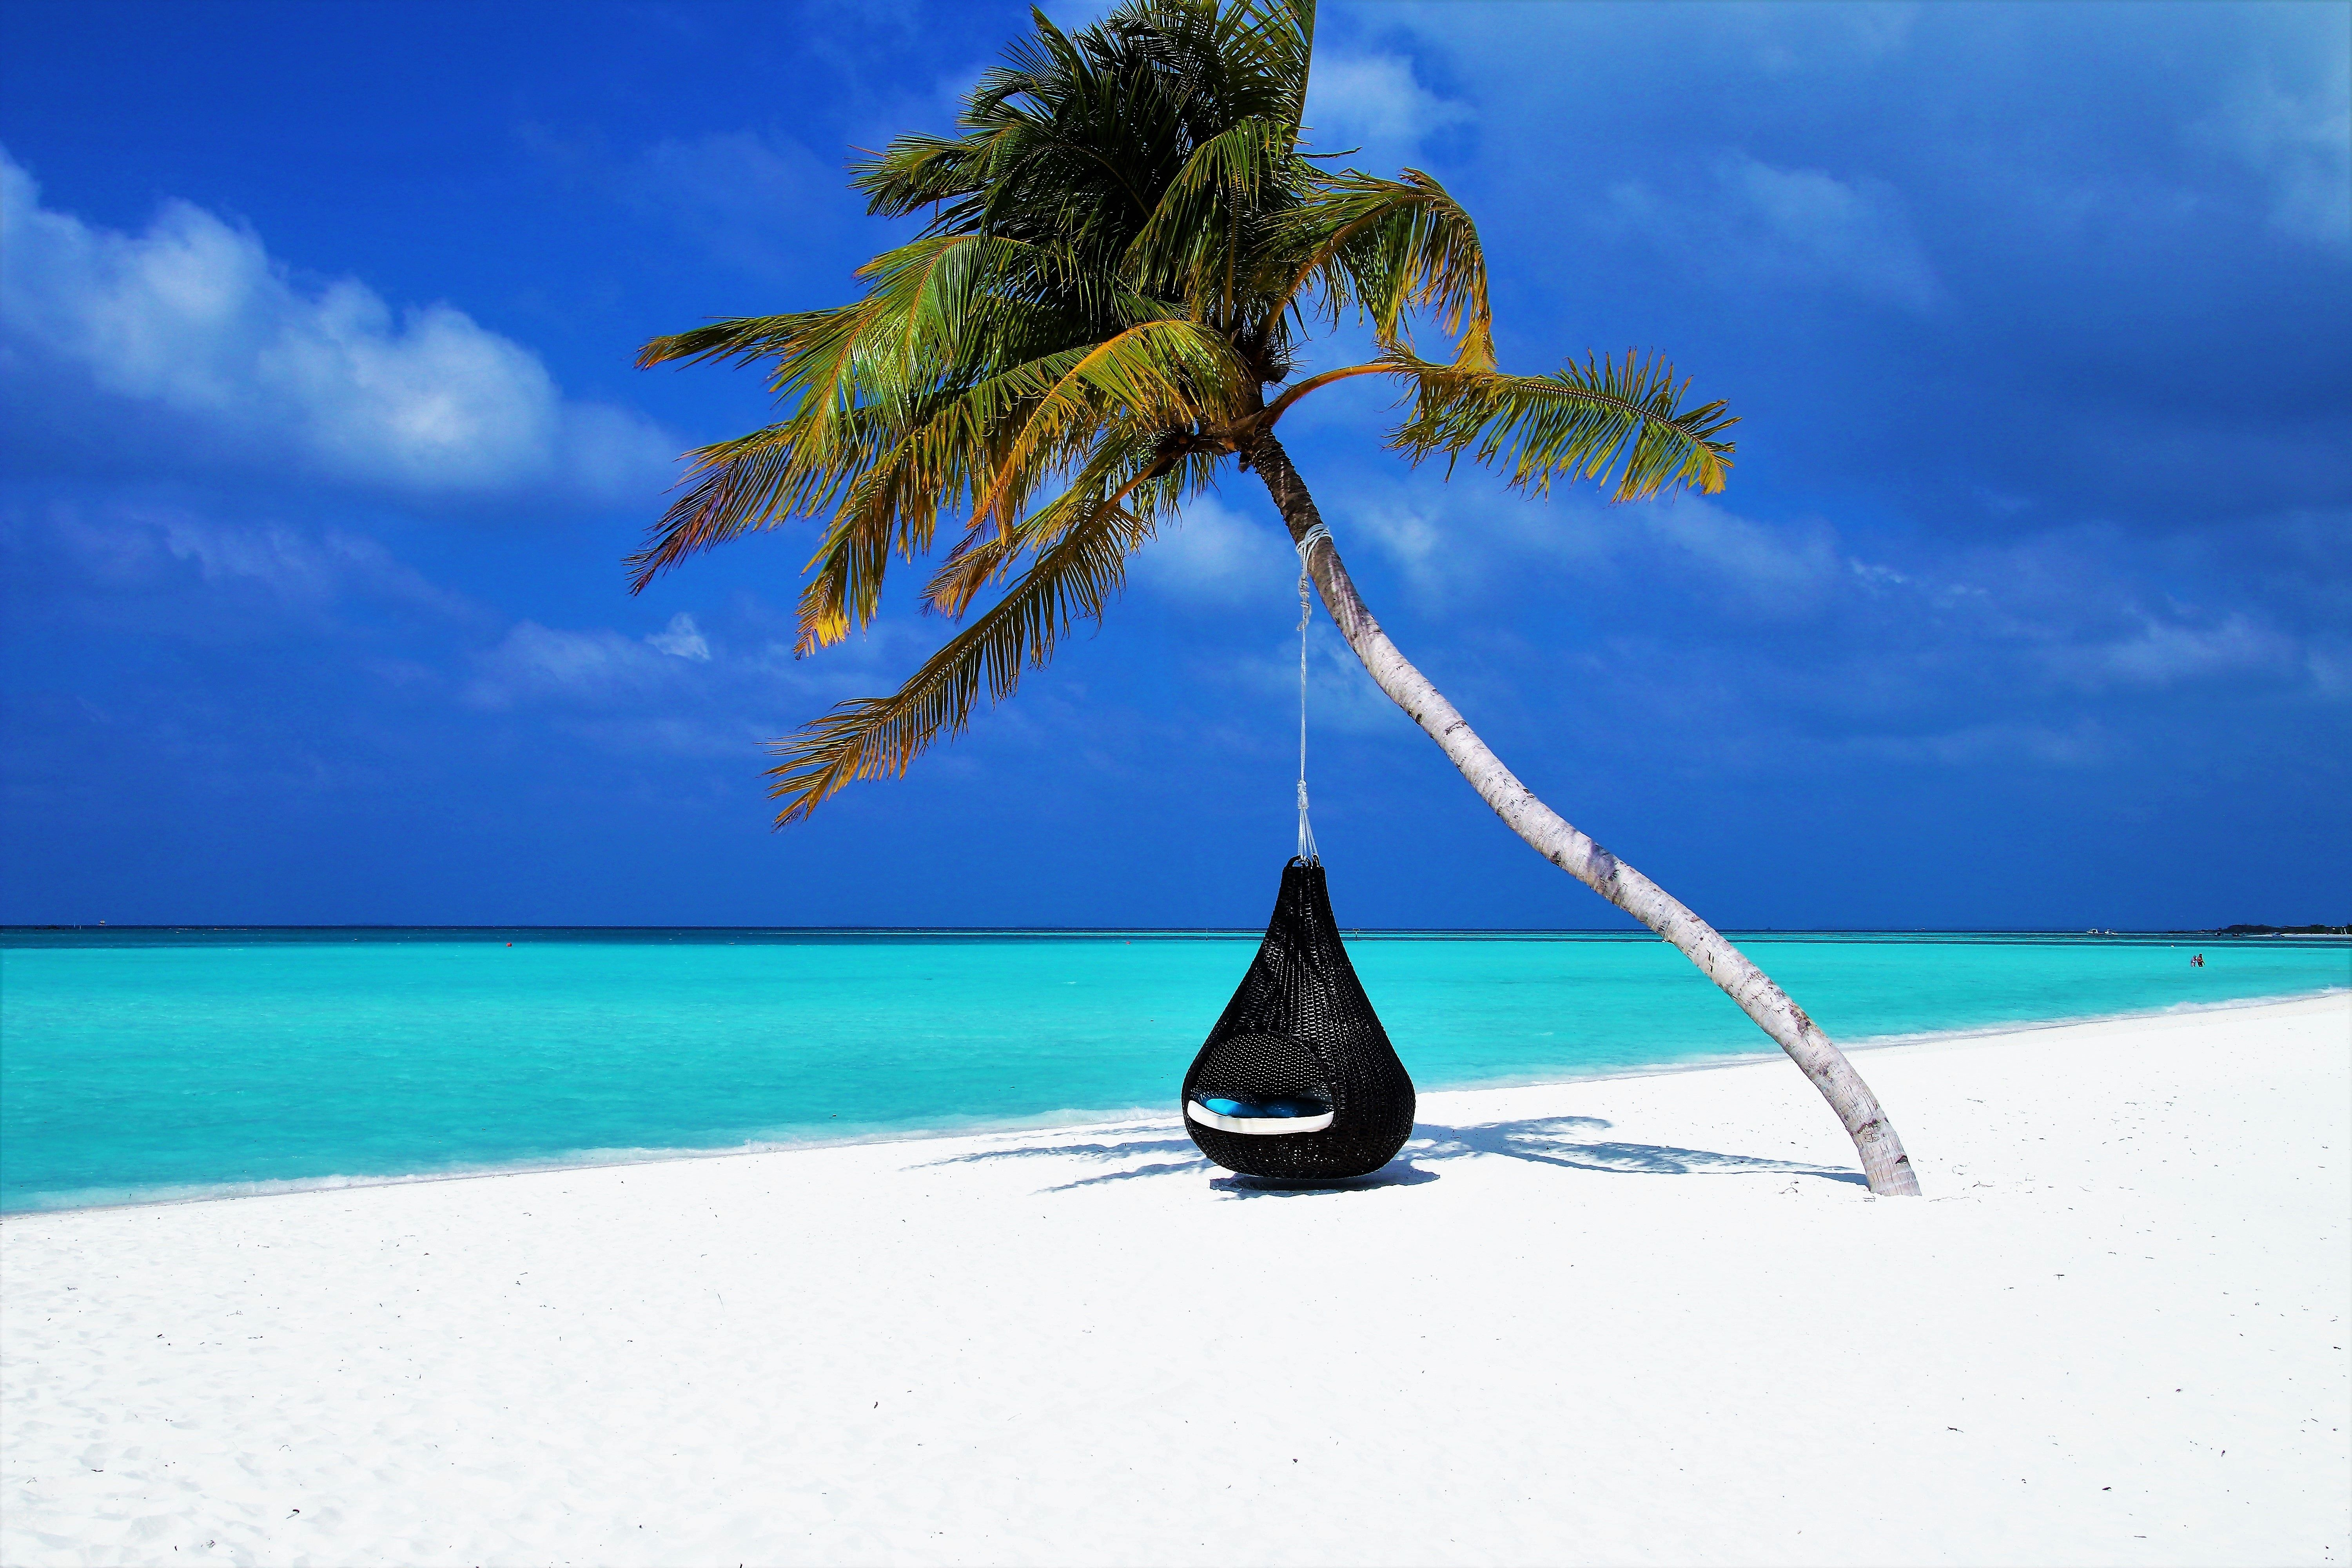 palm tree on beach maldives hd wallpaper adventure tree weather rh pinterest com